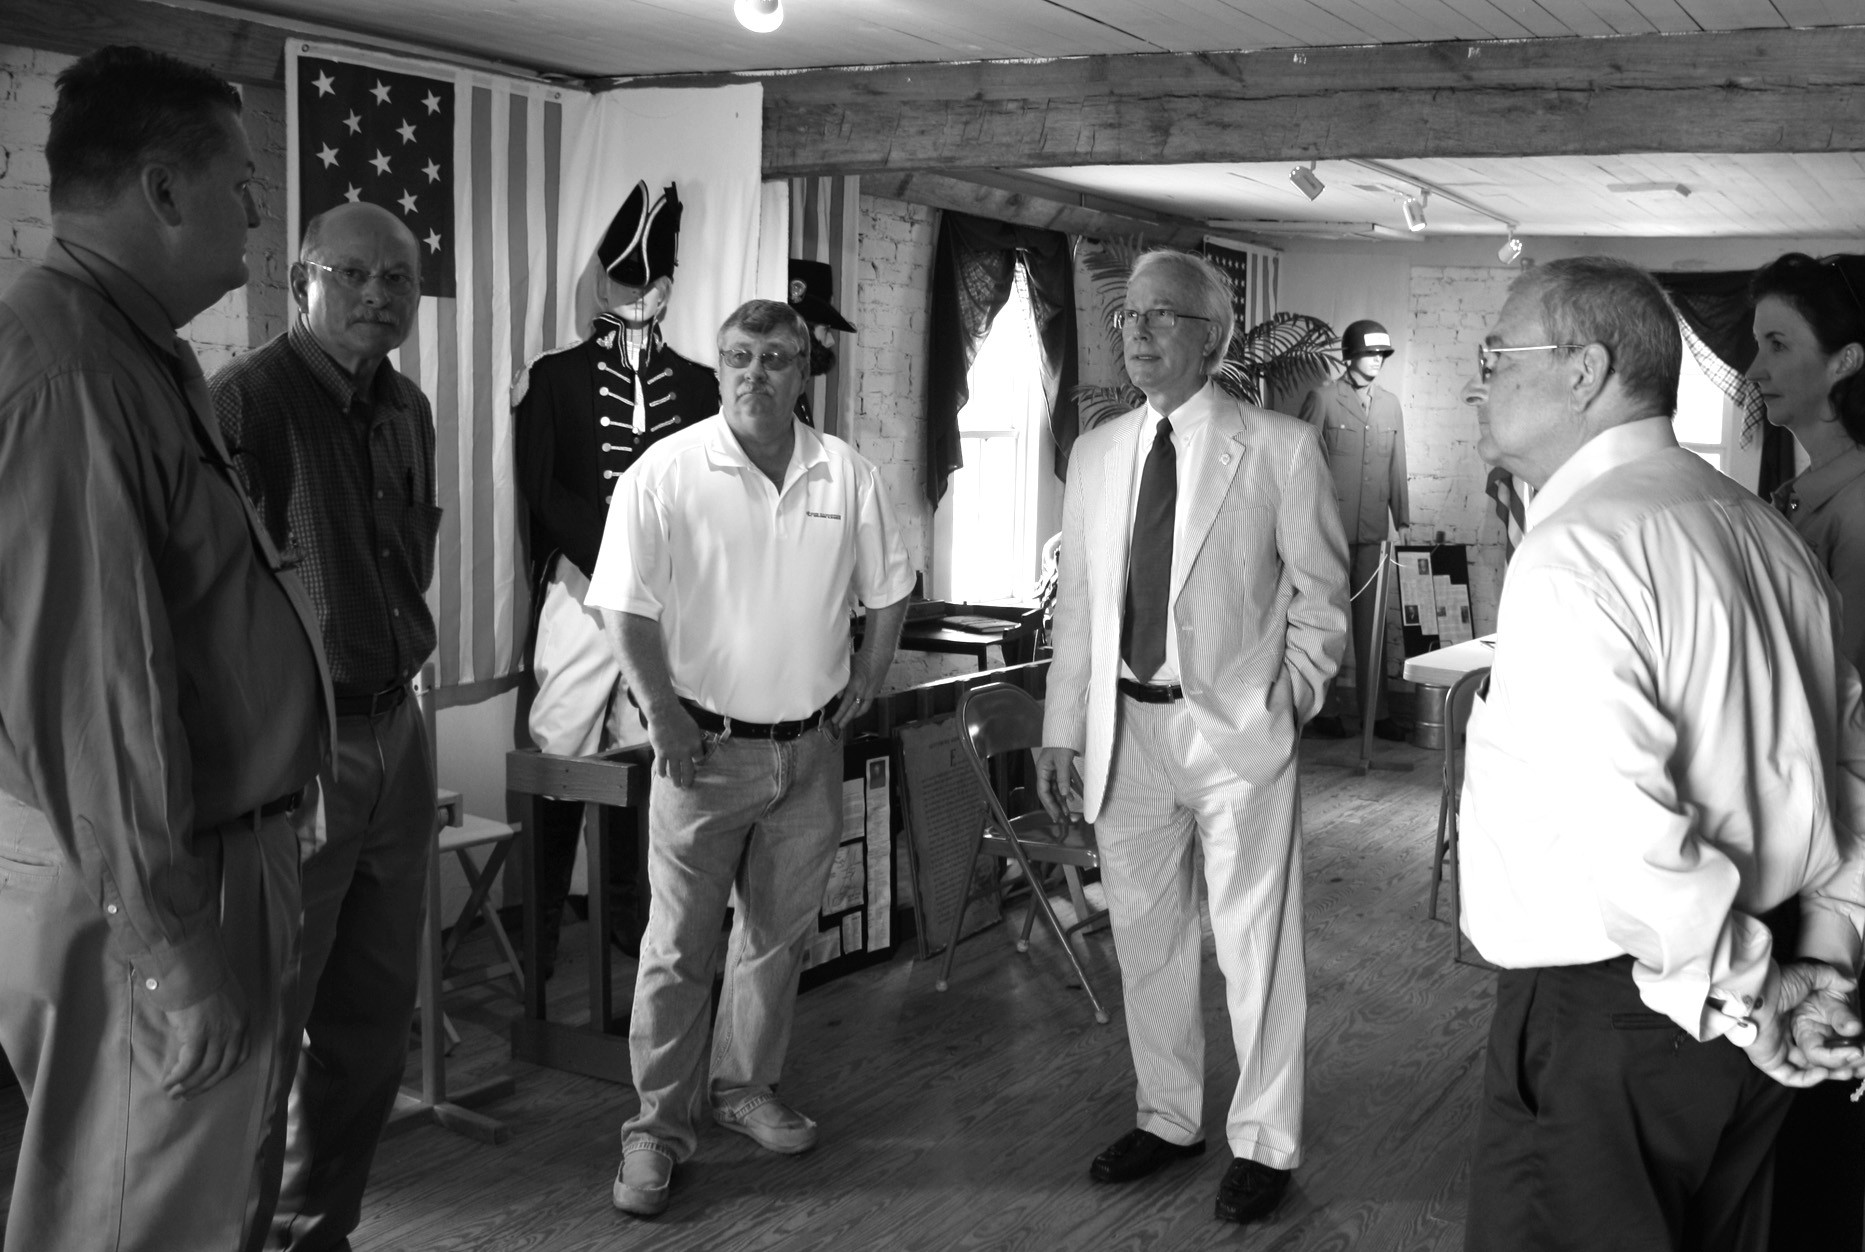 Blount County and surrounding area representatives met with Alabama tourism director Lee Sentell (center, right – wearing tie) to tour Blountsville including the Blountsville Historical Park.